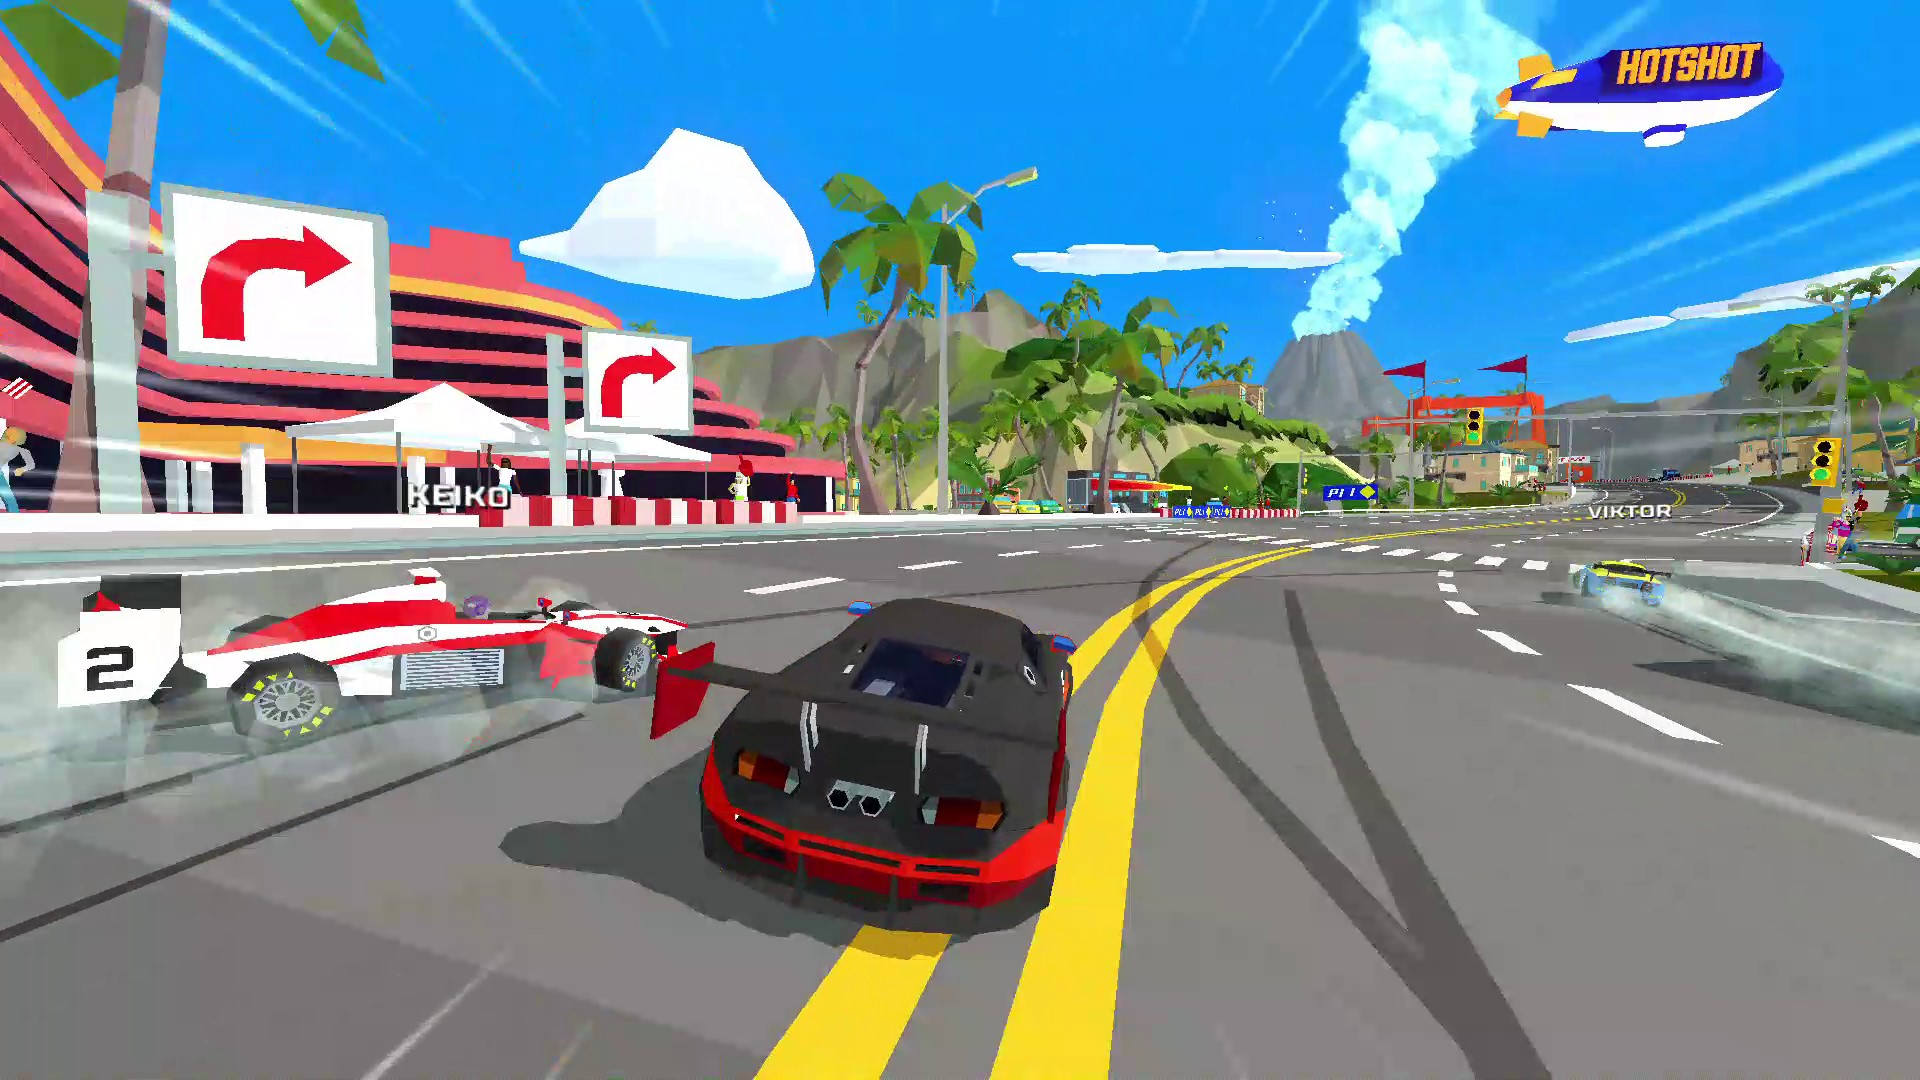 Hotshot Racing (PS4) Review – Start Your Engines!